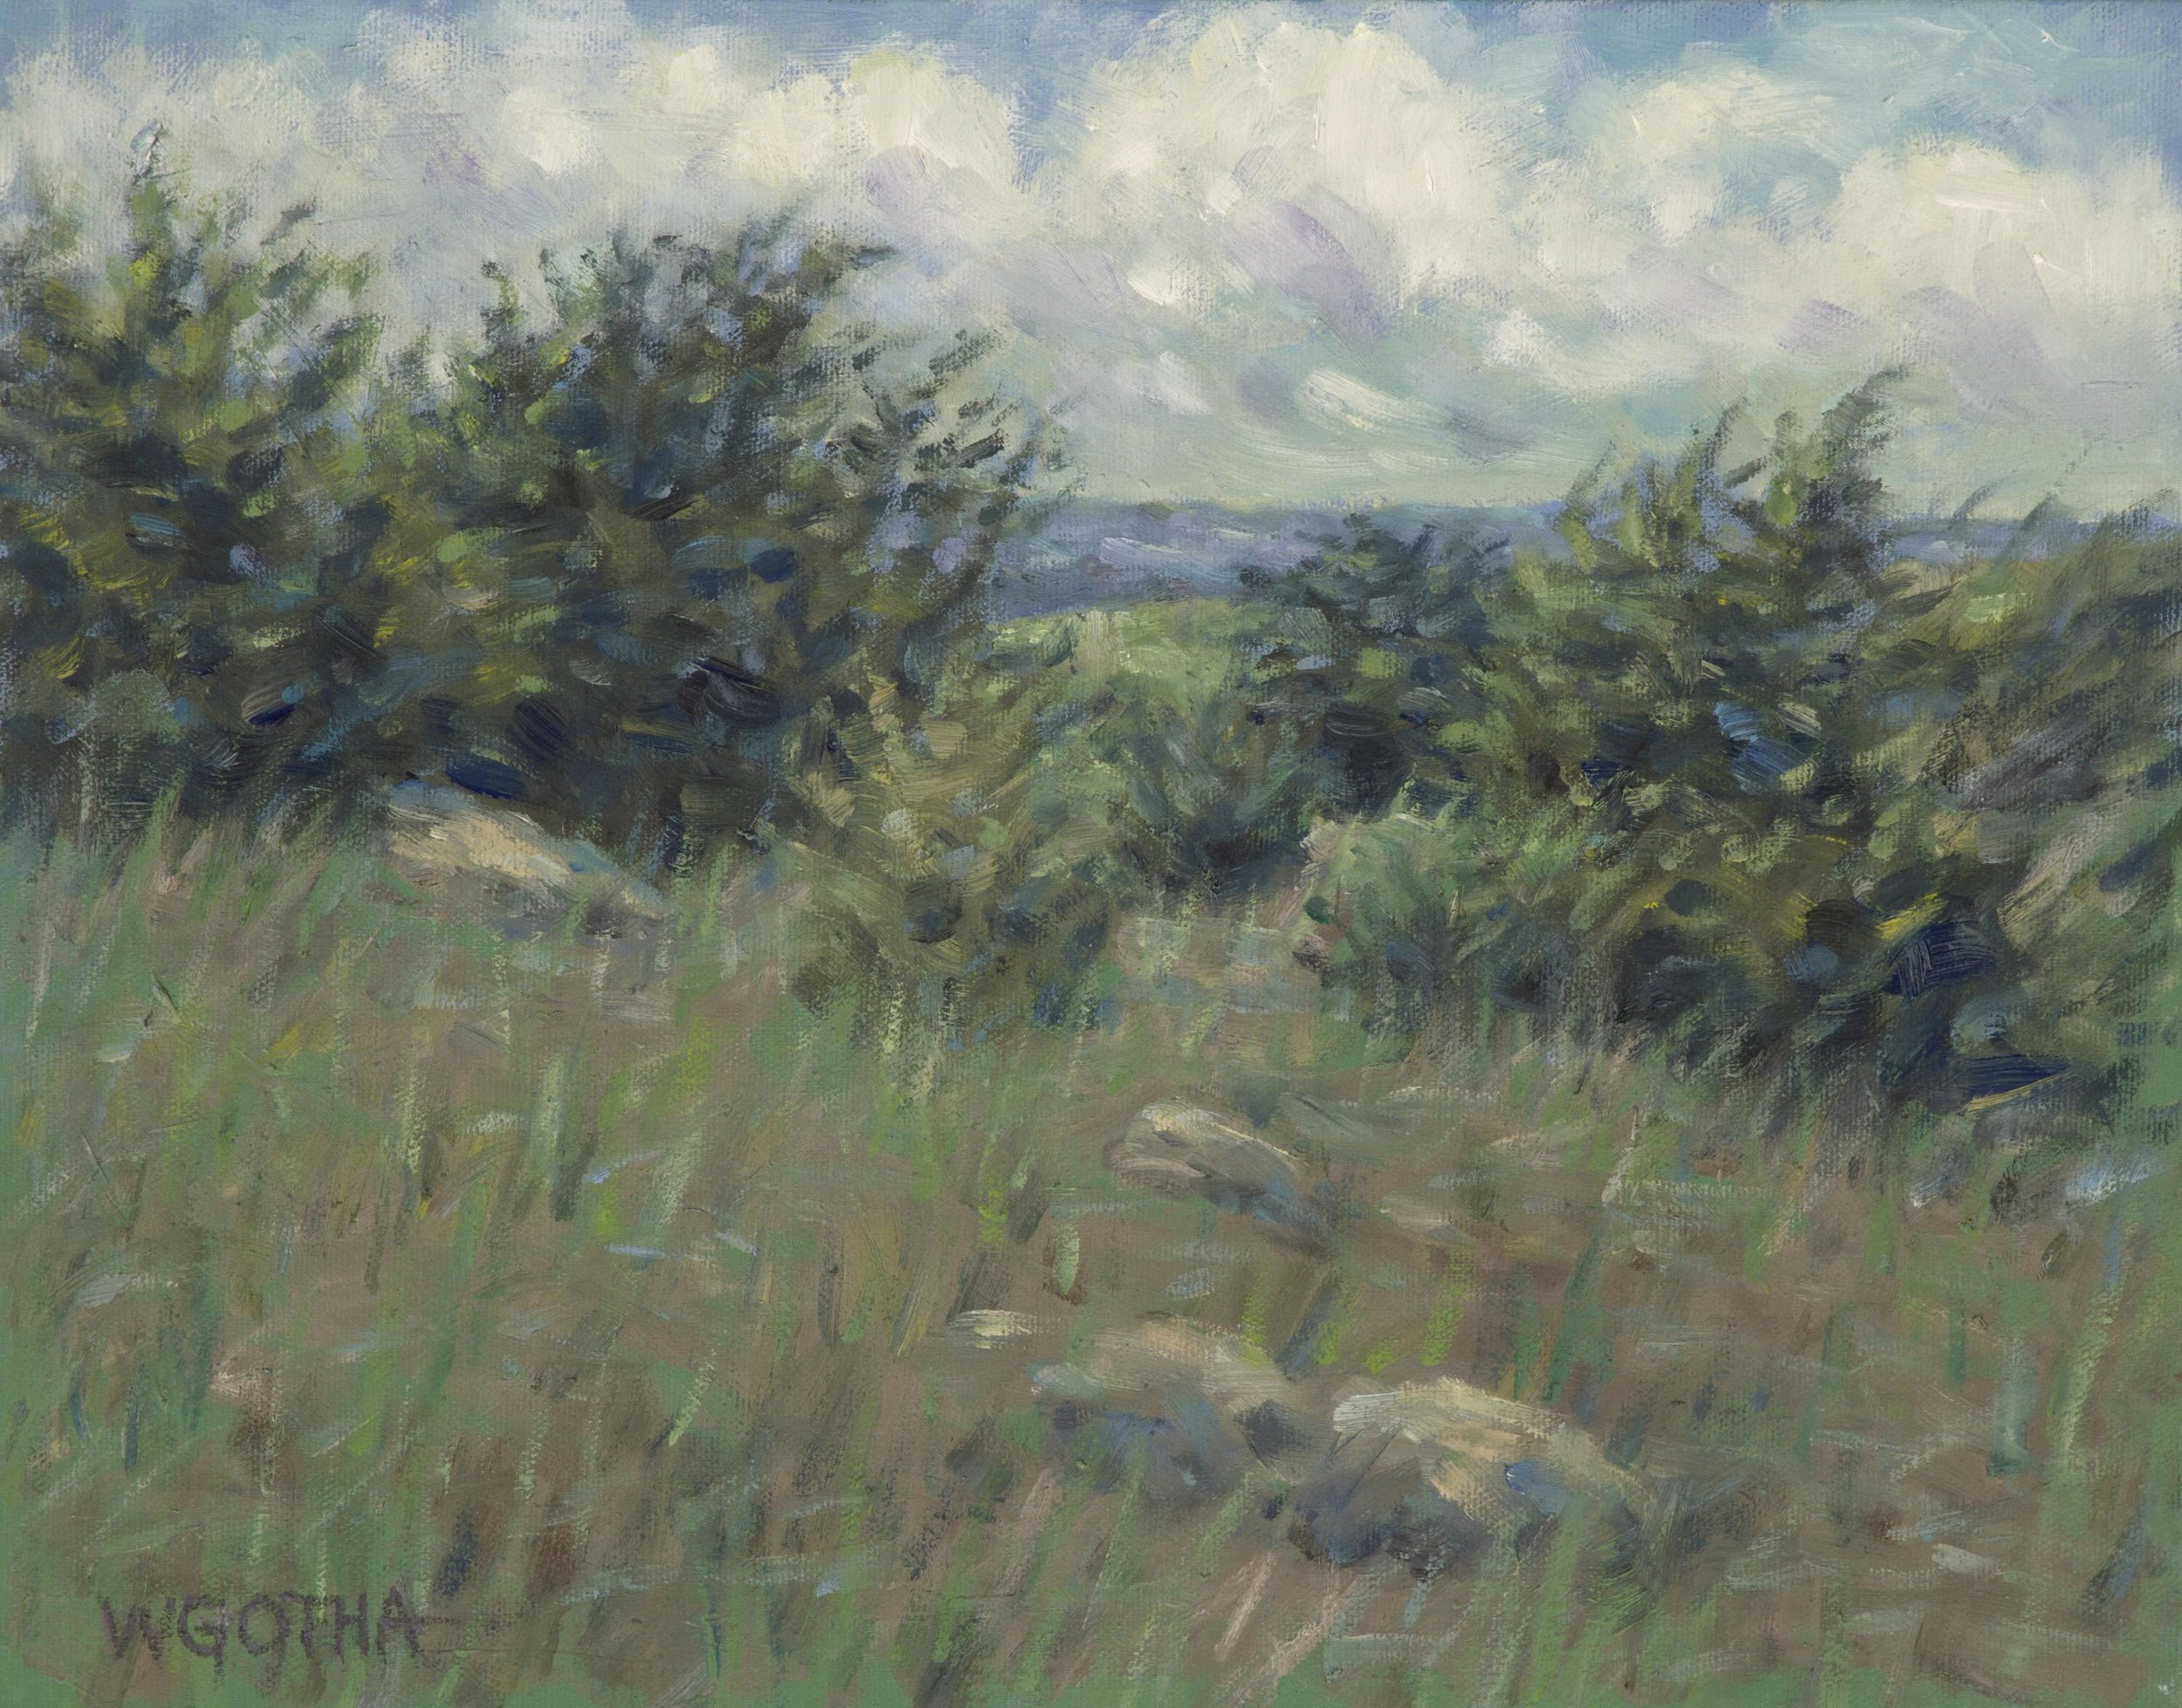 Sea Breeze   (Paine's Creek, Brewster) 11 x 14 oil by William Gotha $950